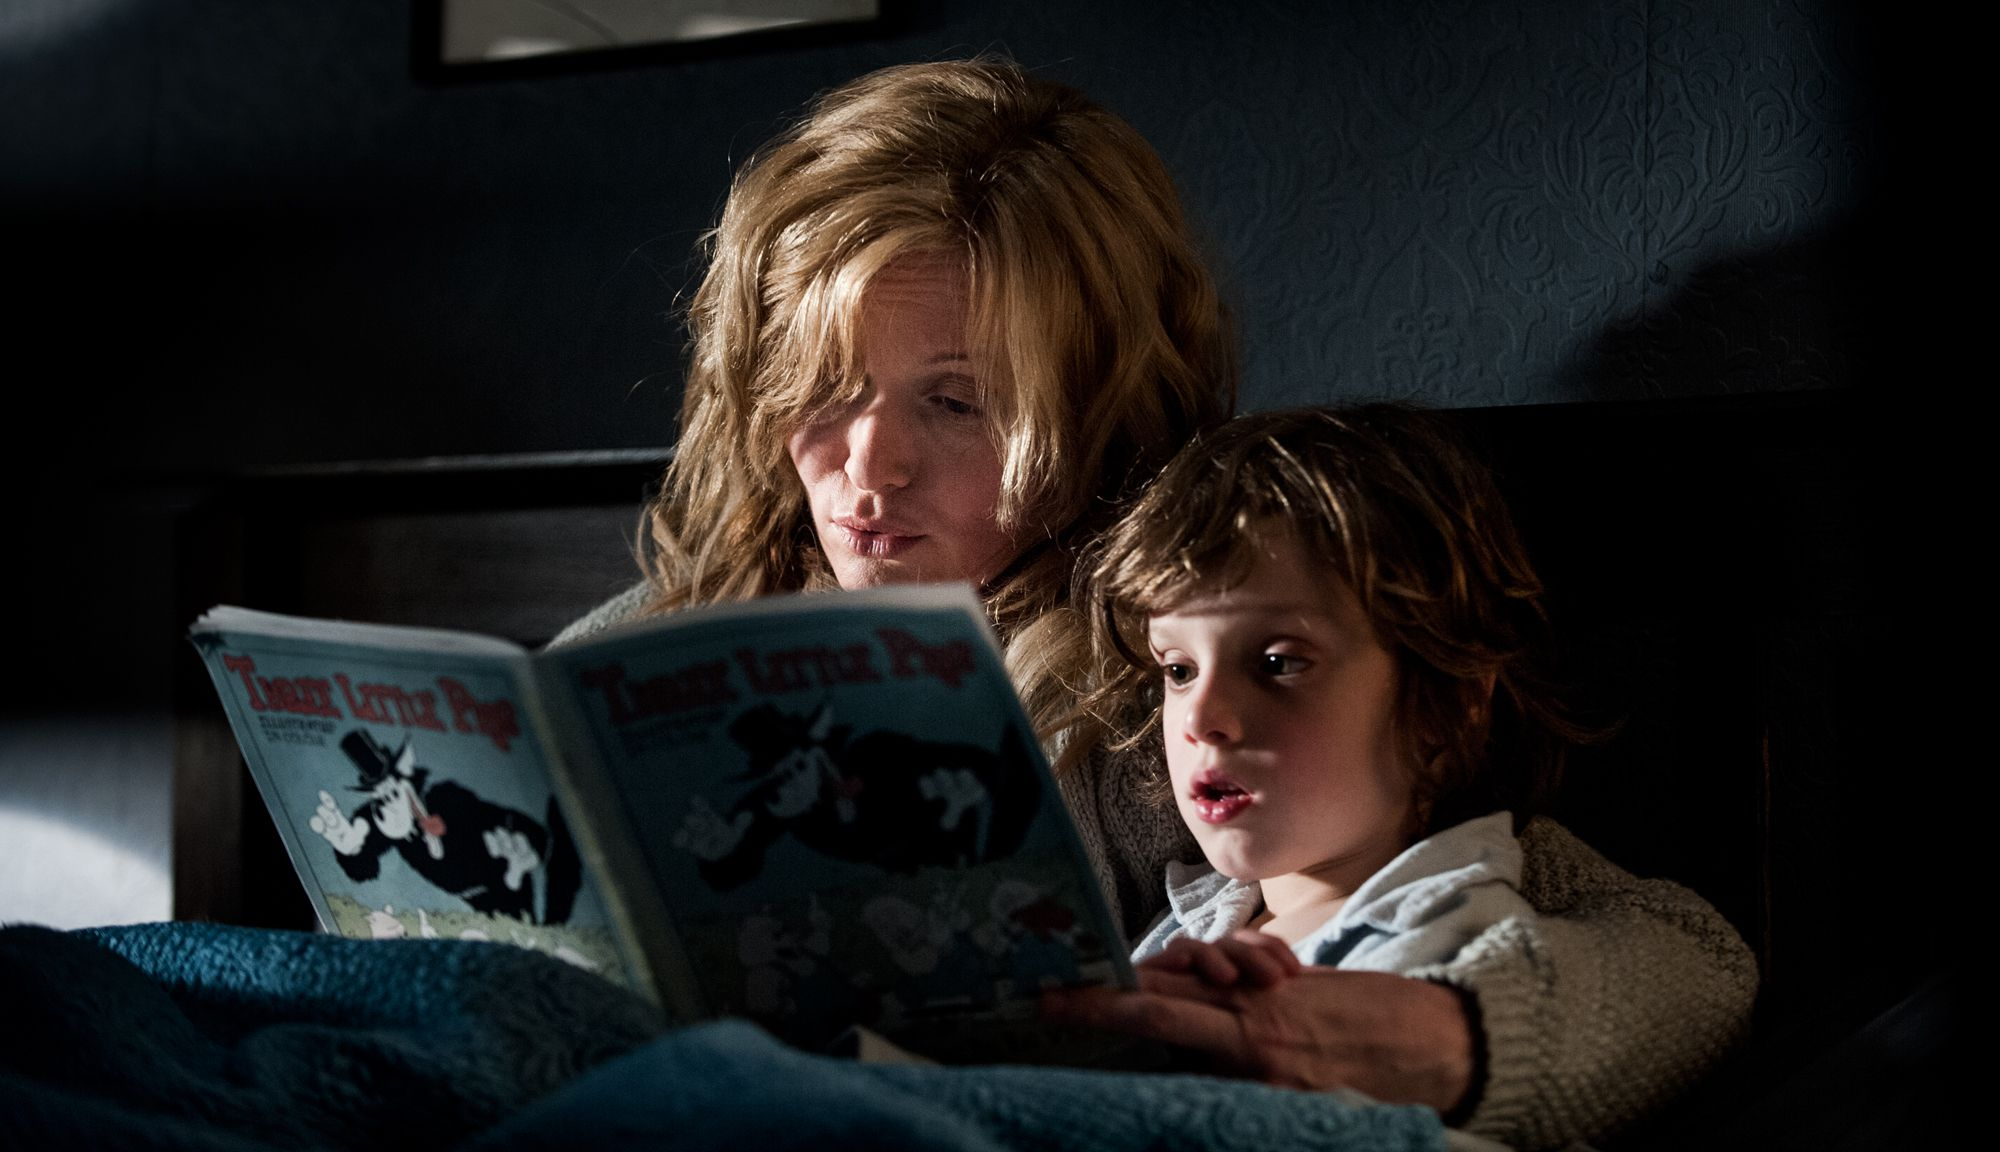 An image from The Babadook